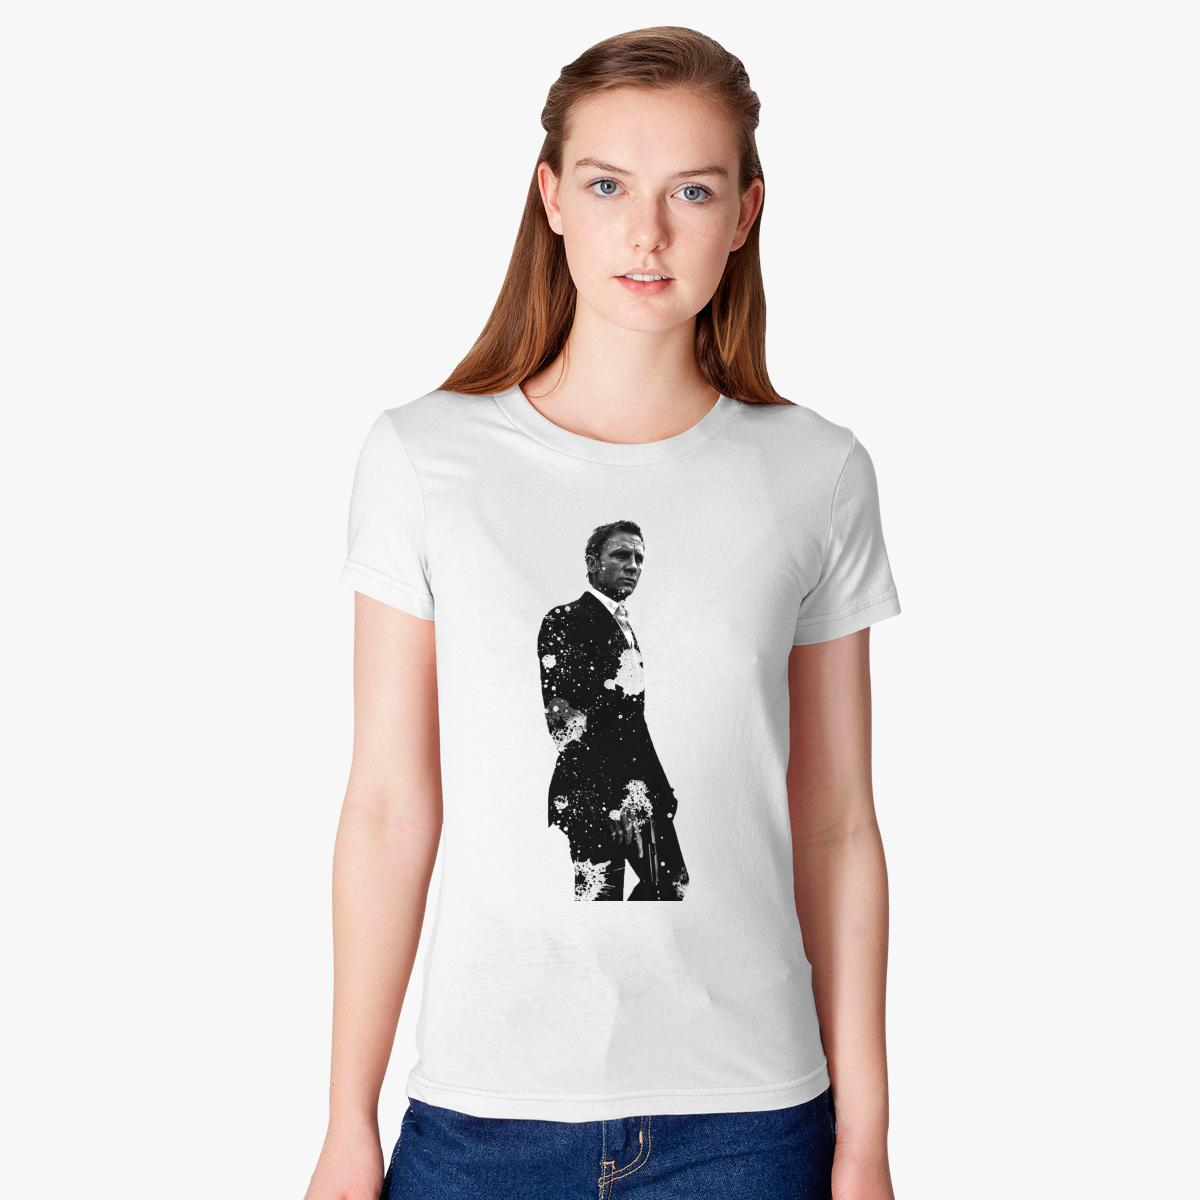 Buy 007 SPECTRE Women's T-shirt, 181238